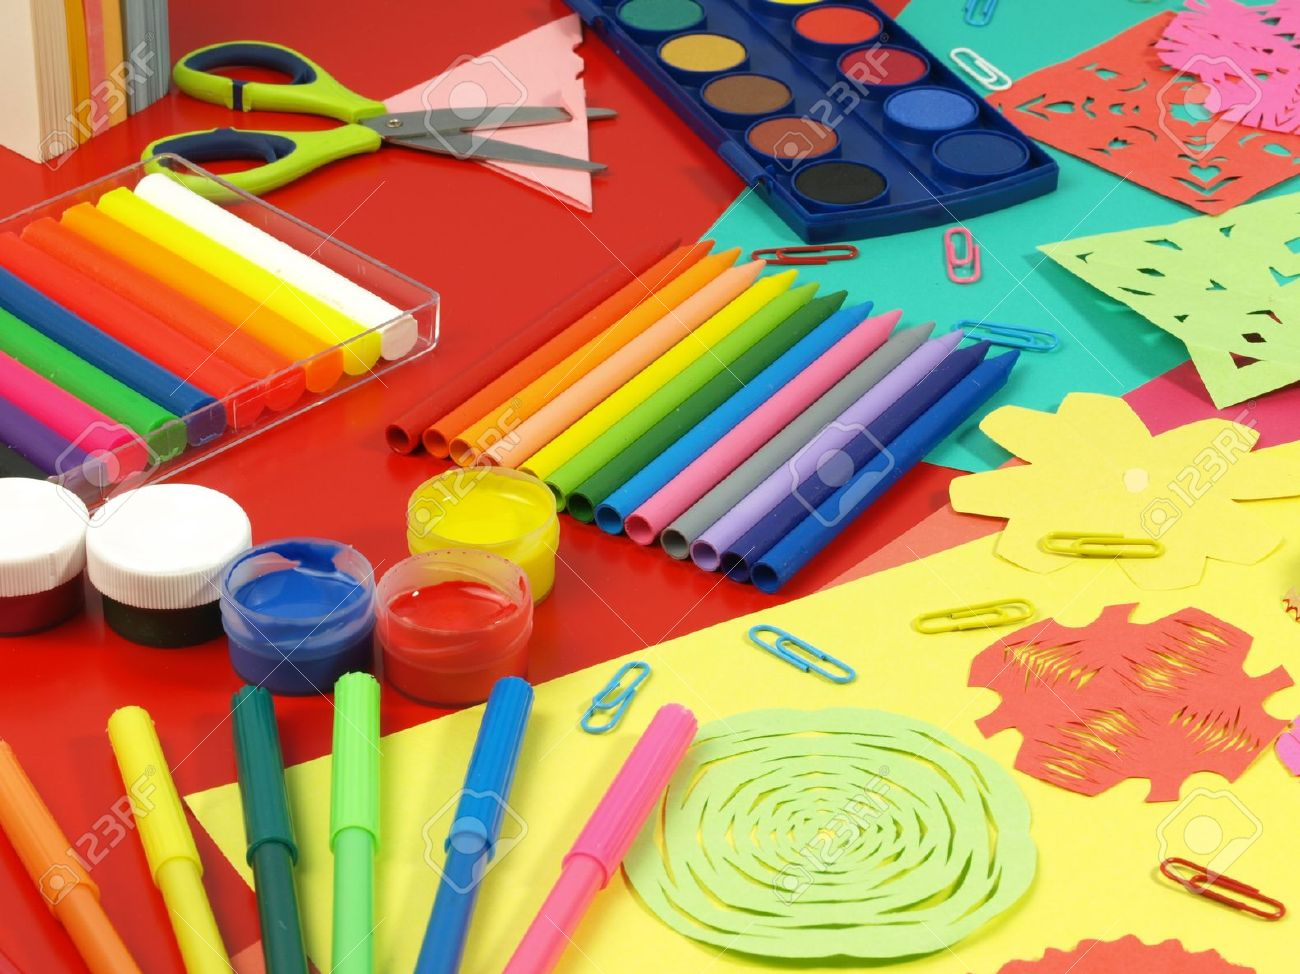 Childrens arts and crafts supplies - Download